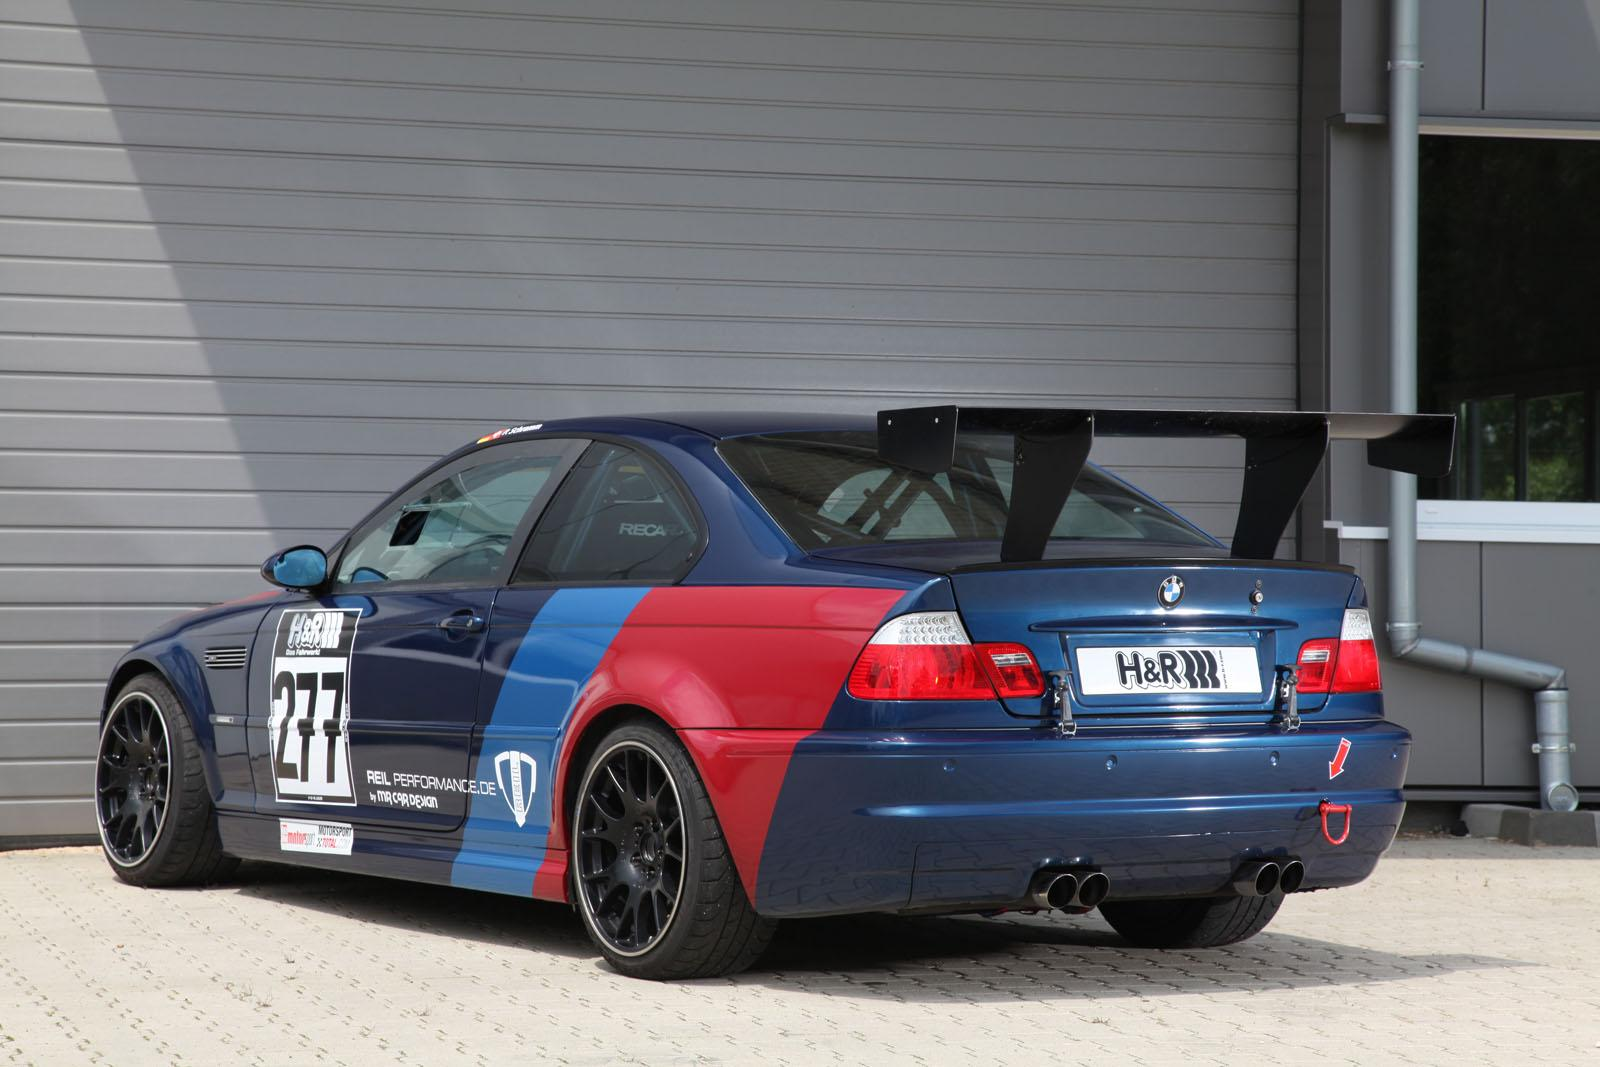 Bmw m3 csl tuned by reil performance nurburgring in 7 43 for Bmw nasa garage juillet niort